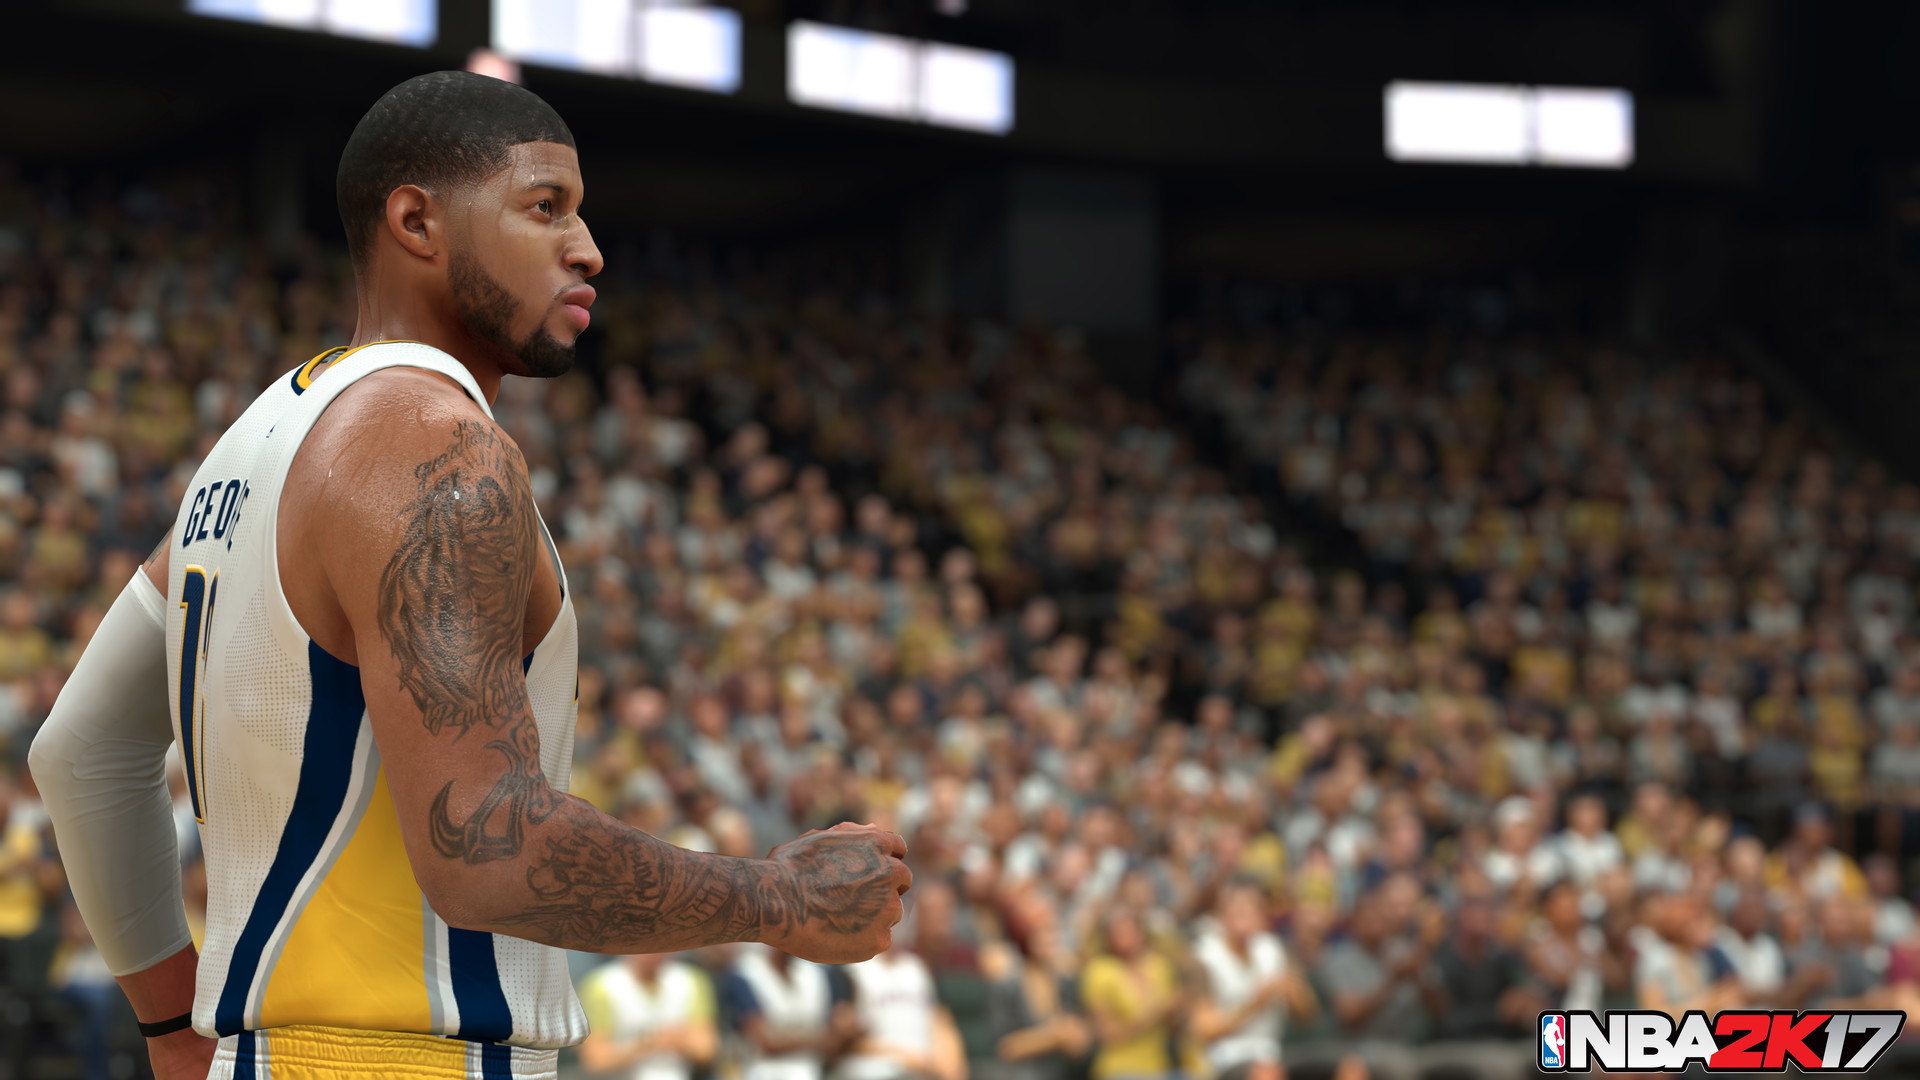 NBA 2K17 Free Download for PC